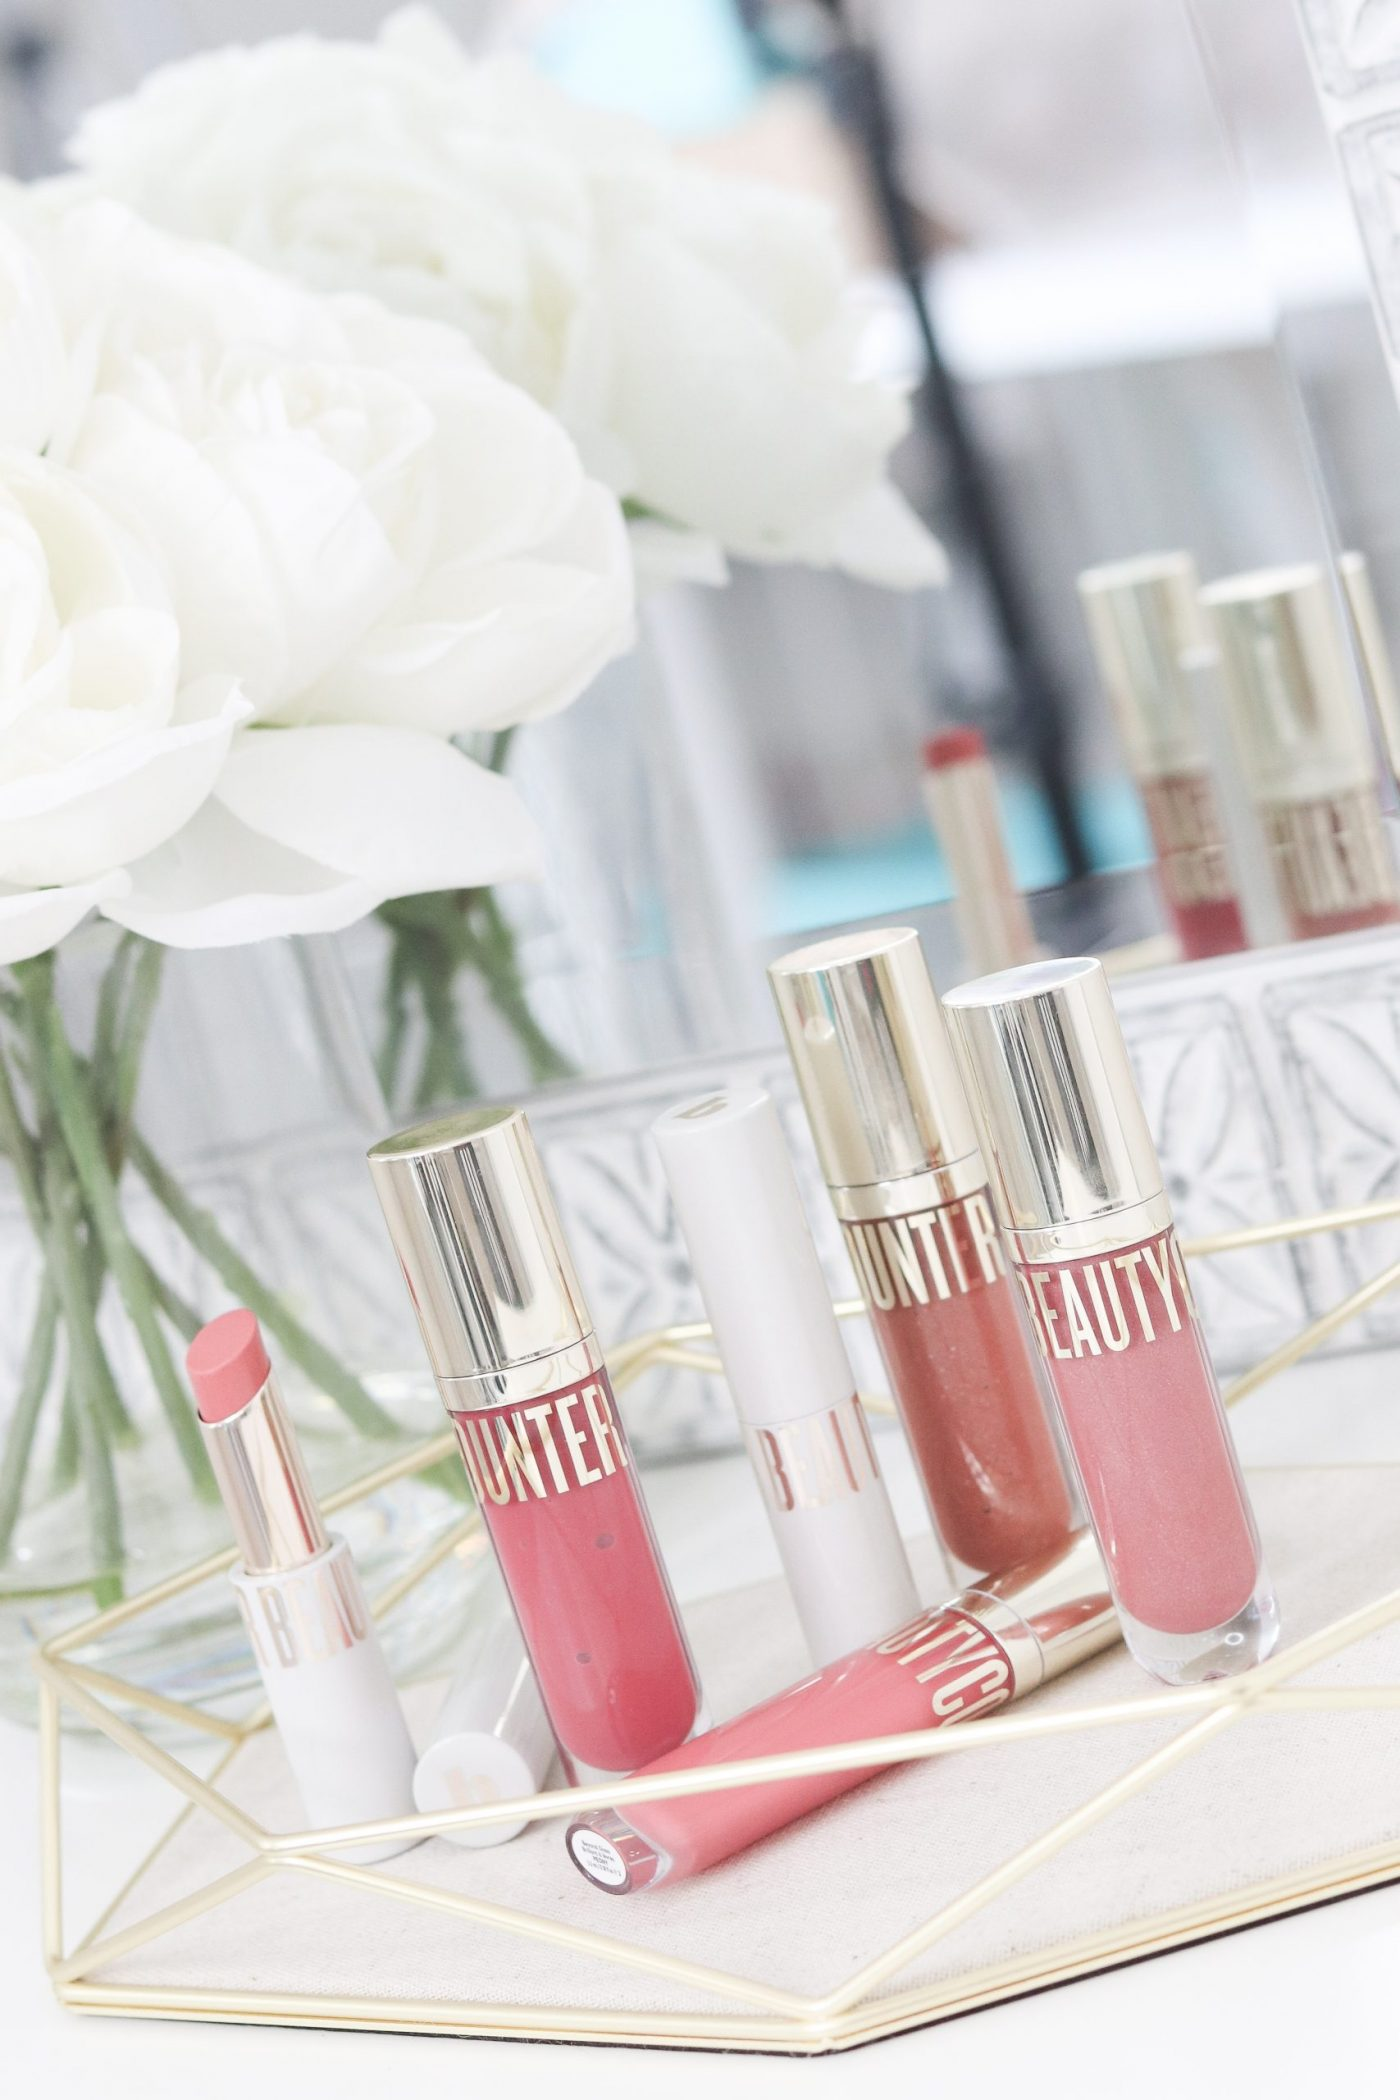 Becoming a Beautycounter Consultant | Beautycounter Sheer Genius Lipsticks and Beyond Gloss | Brighter Darling Blog